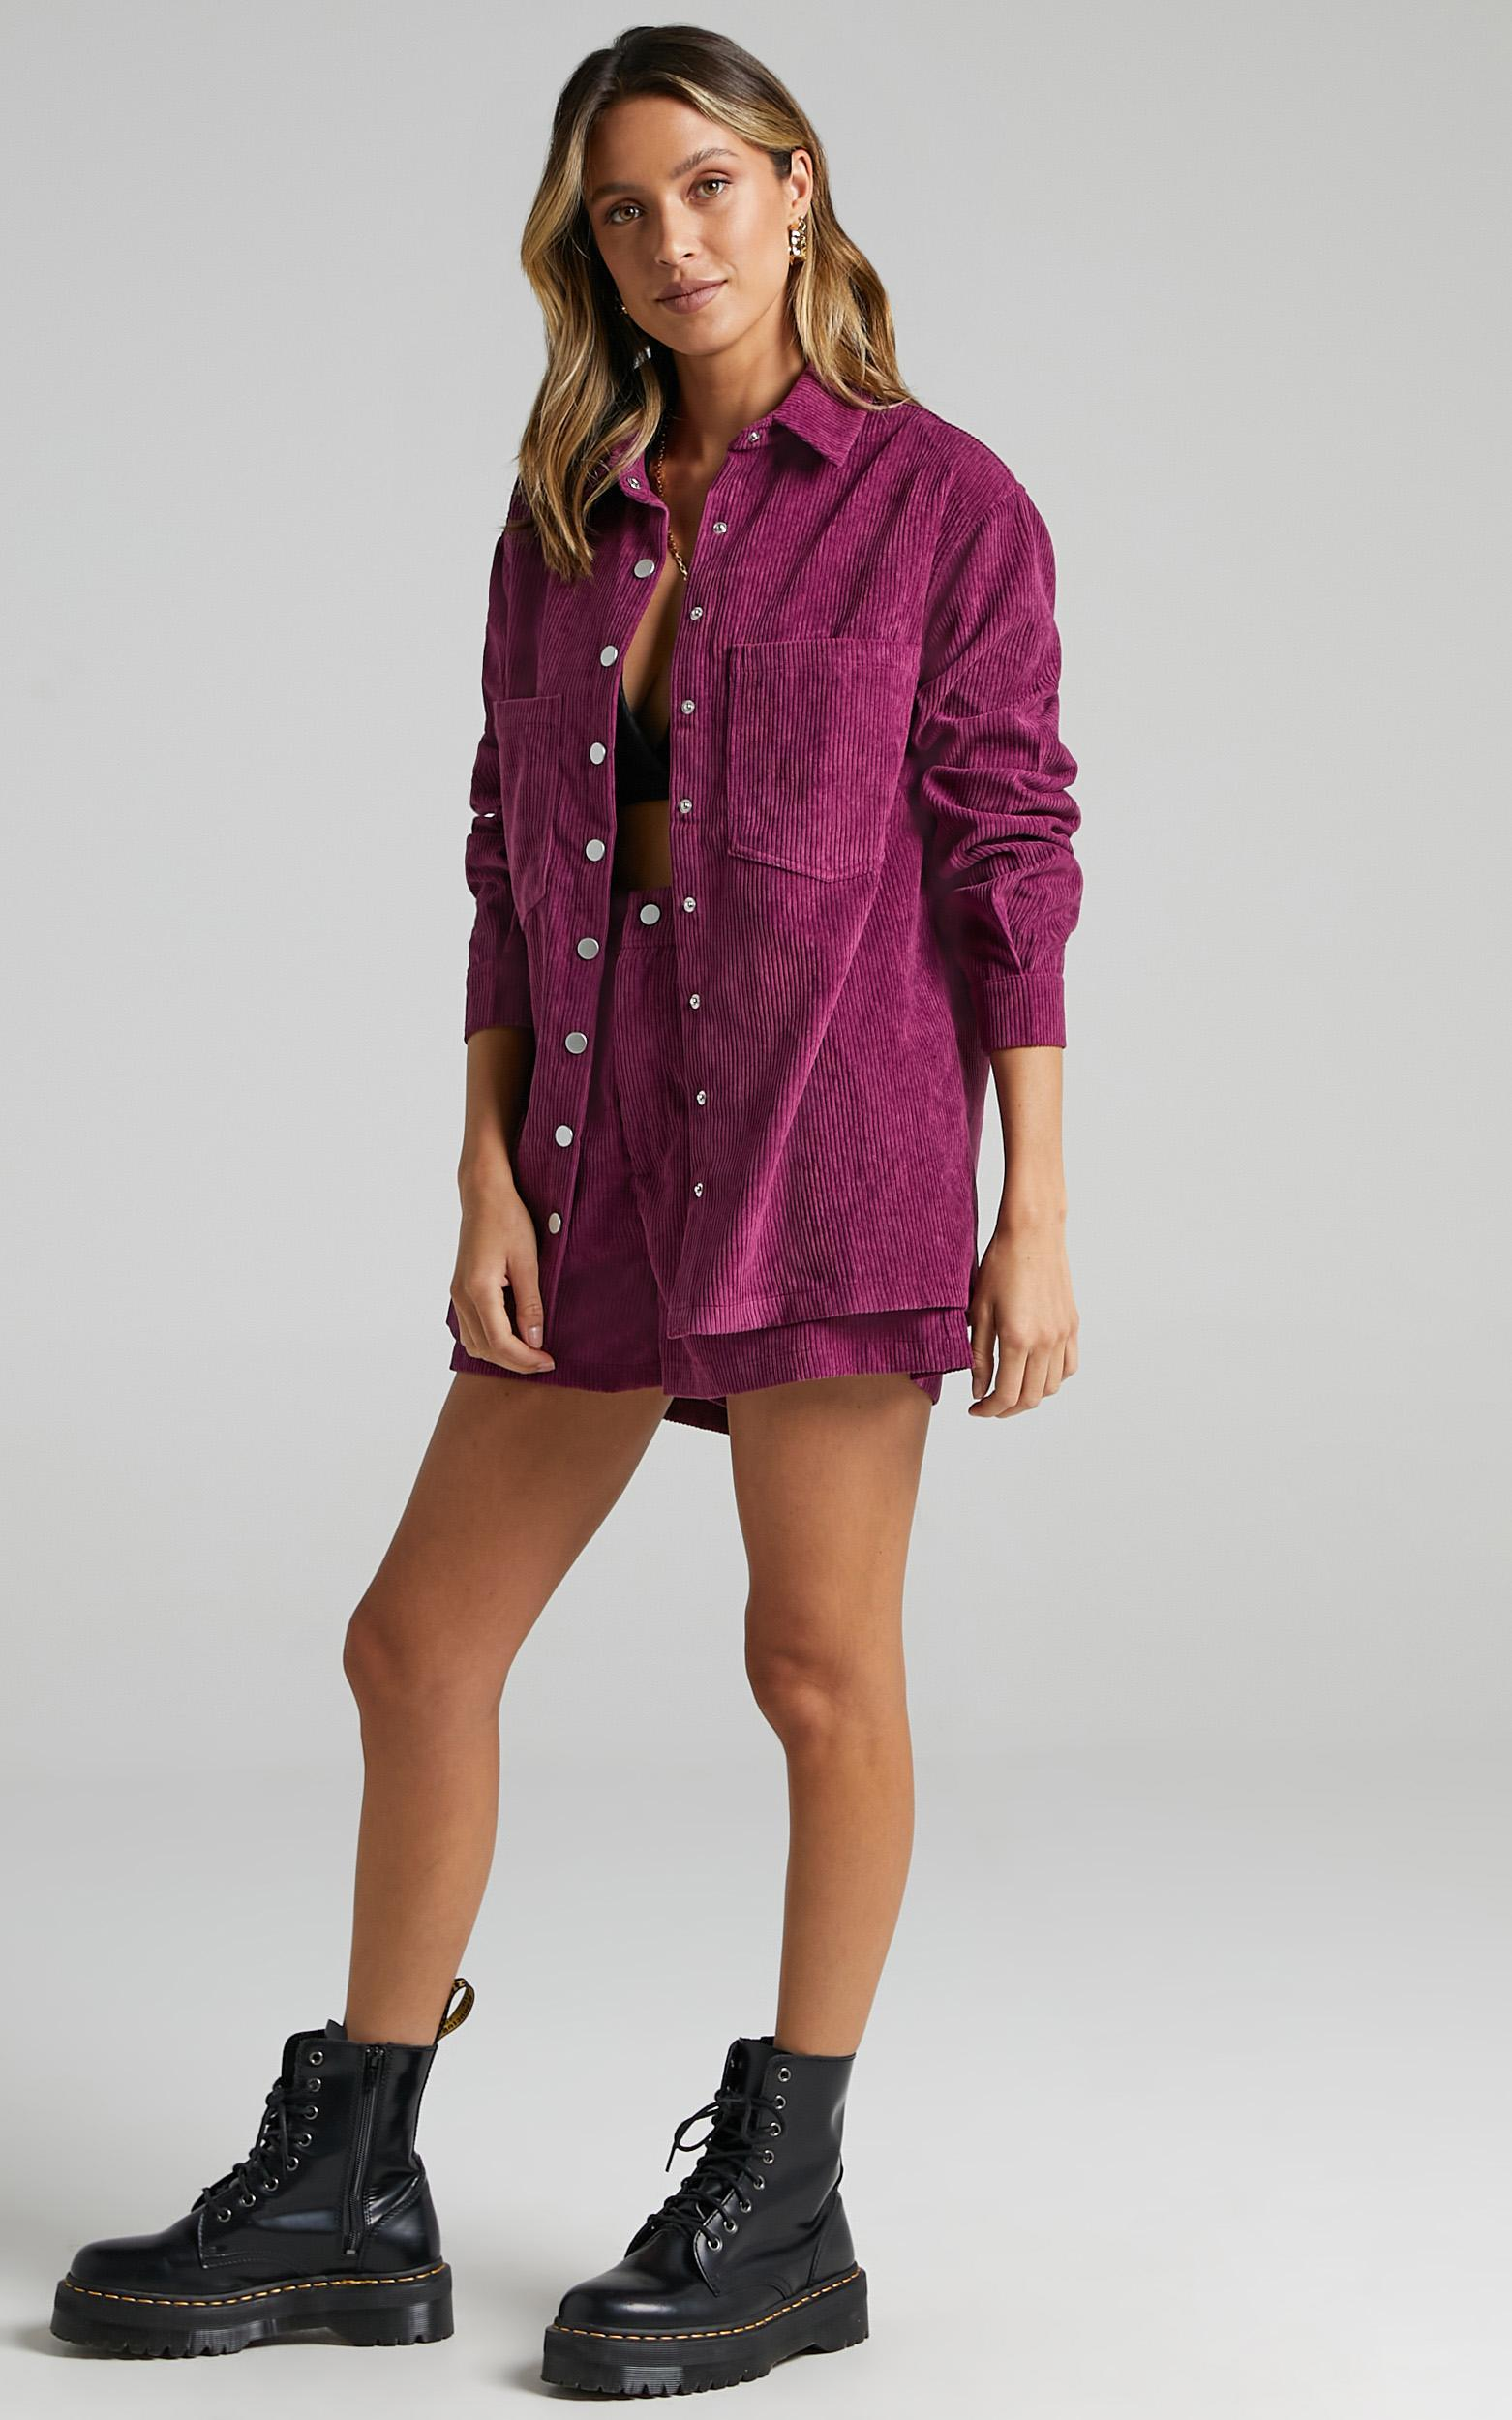 Hillevi Shacket in Mulberry Cord - 4 (XXS), Purple, hi-res image number null